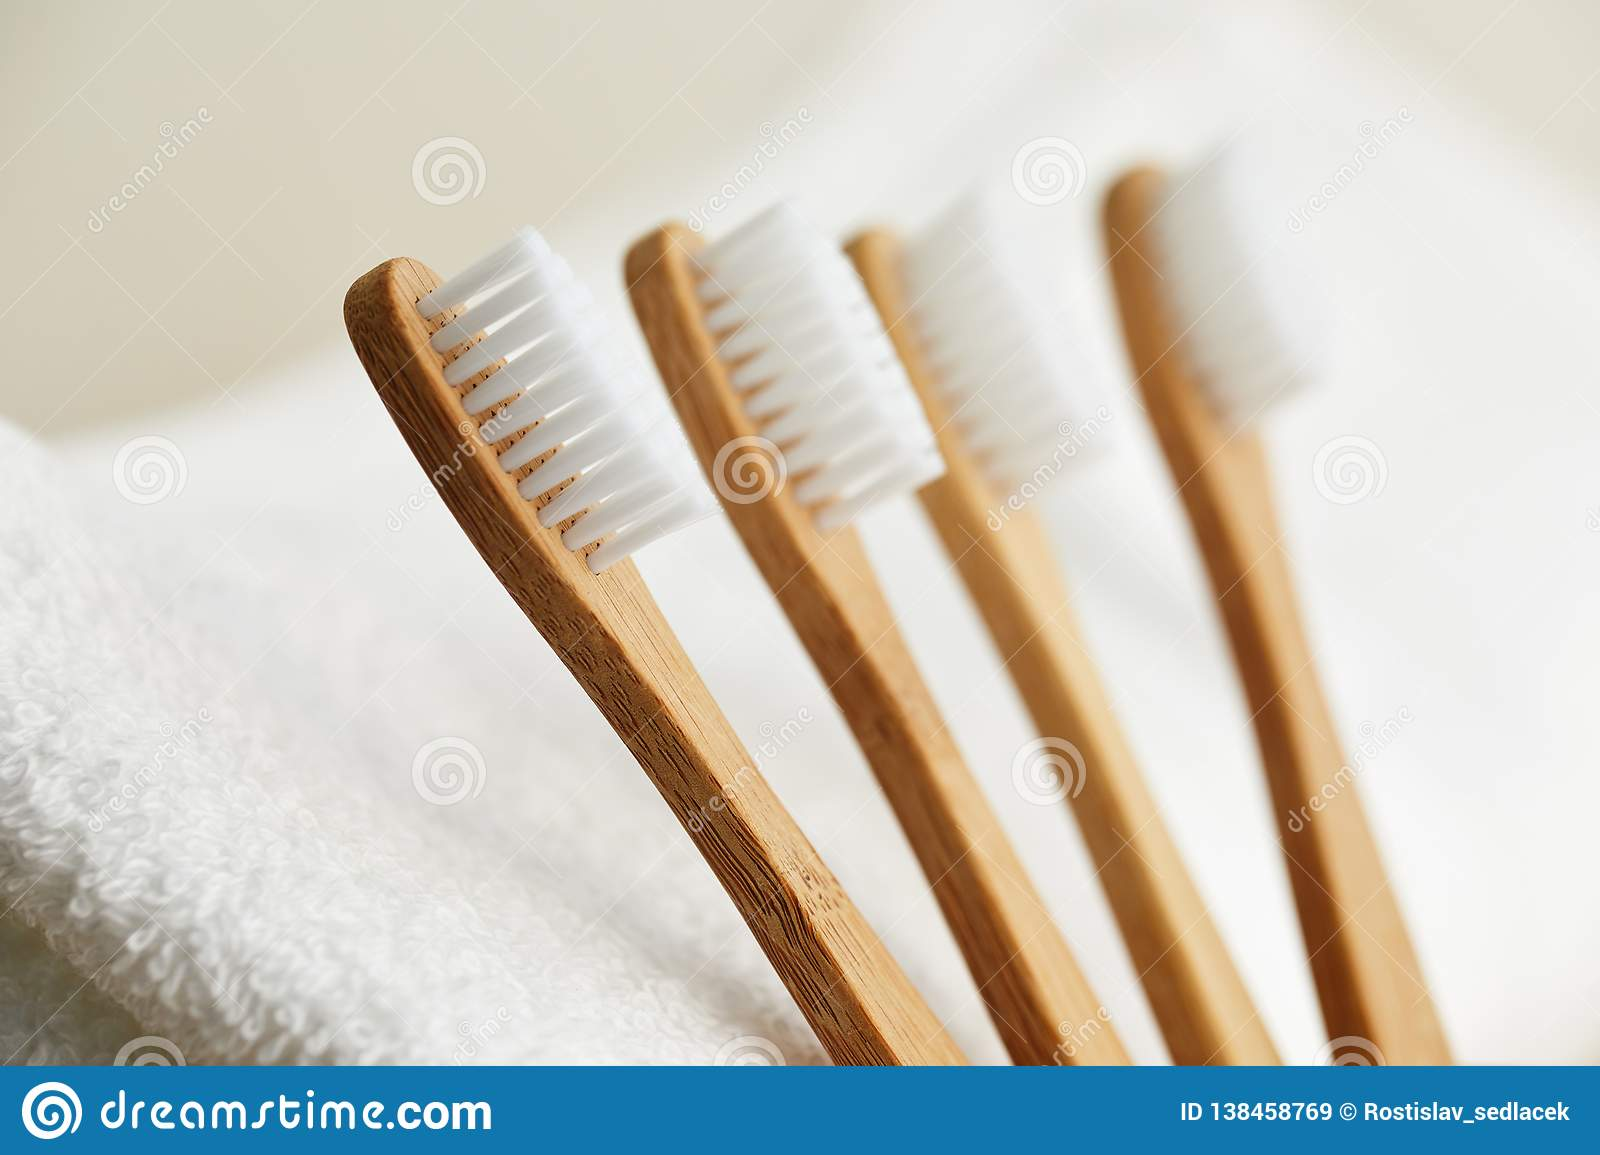 Four bamboo toothbrushes on white towel